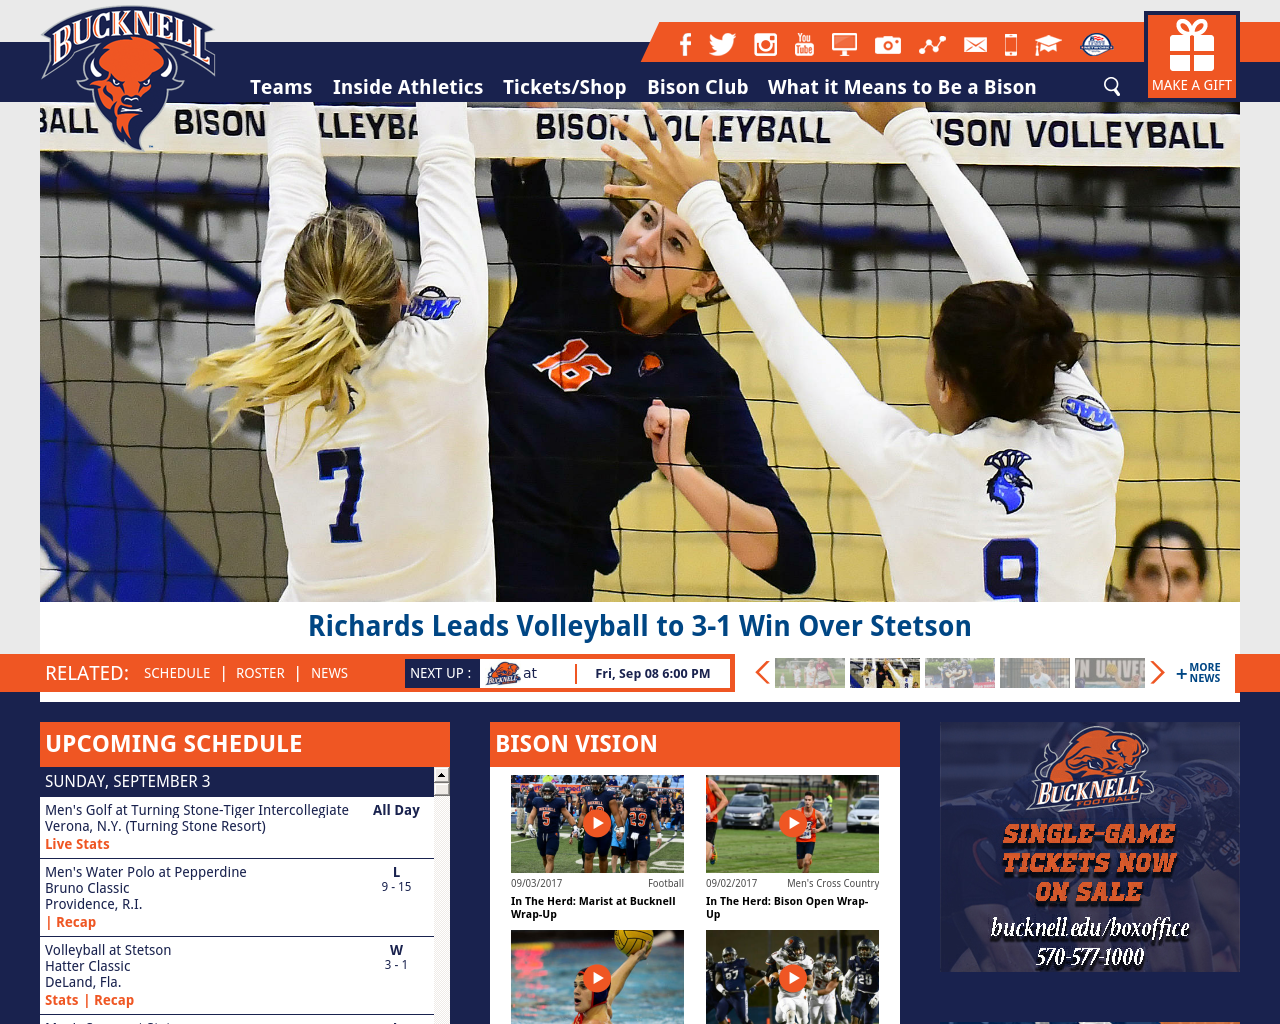 Bucknell-Advertising-Reviews-Pricing